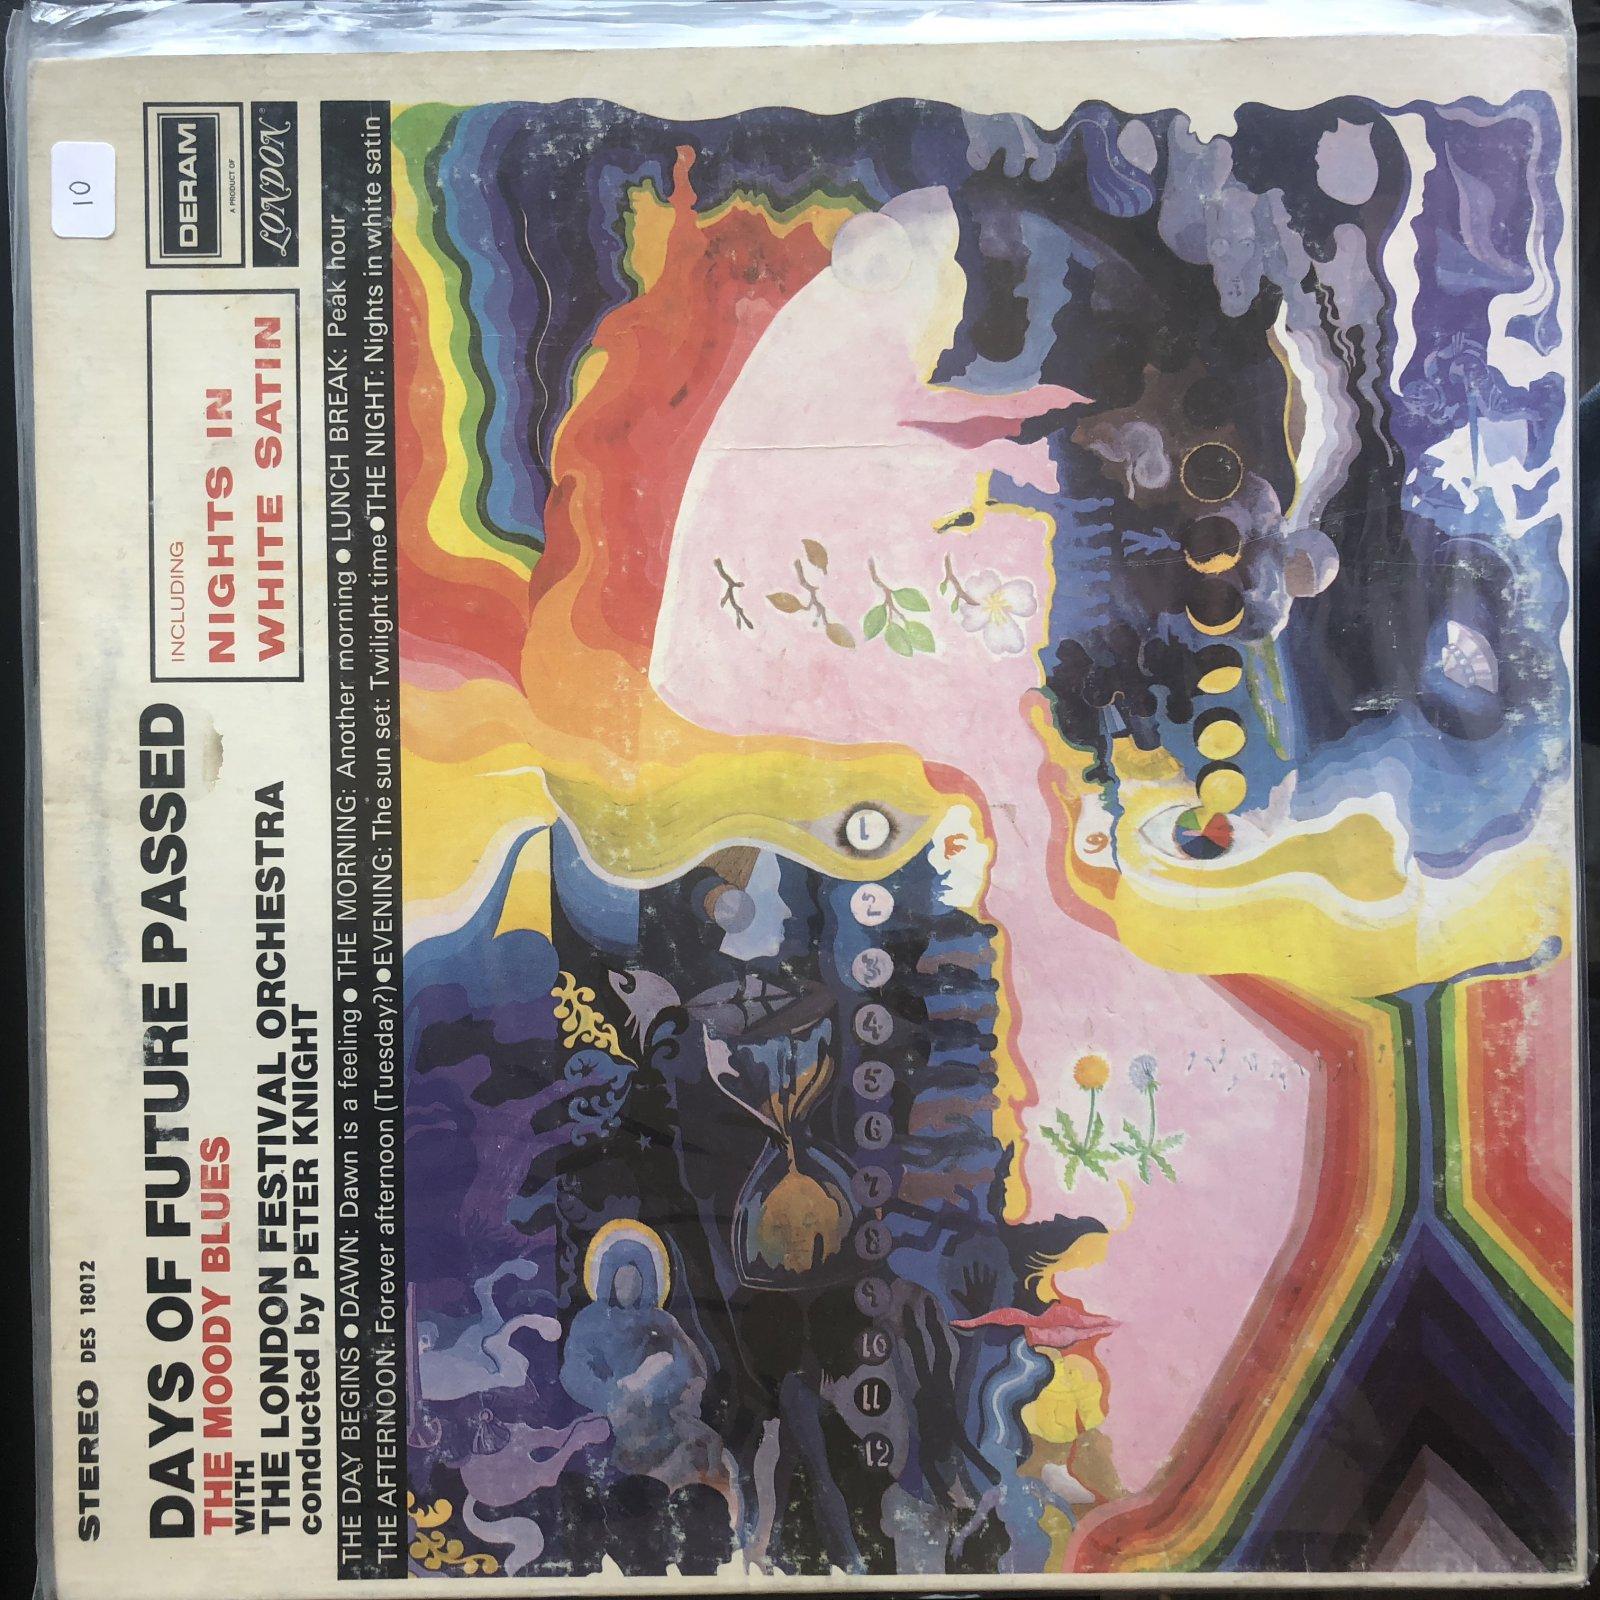 The Moody Blues with the London Festival Orchestra - Days of Future